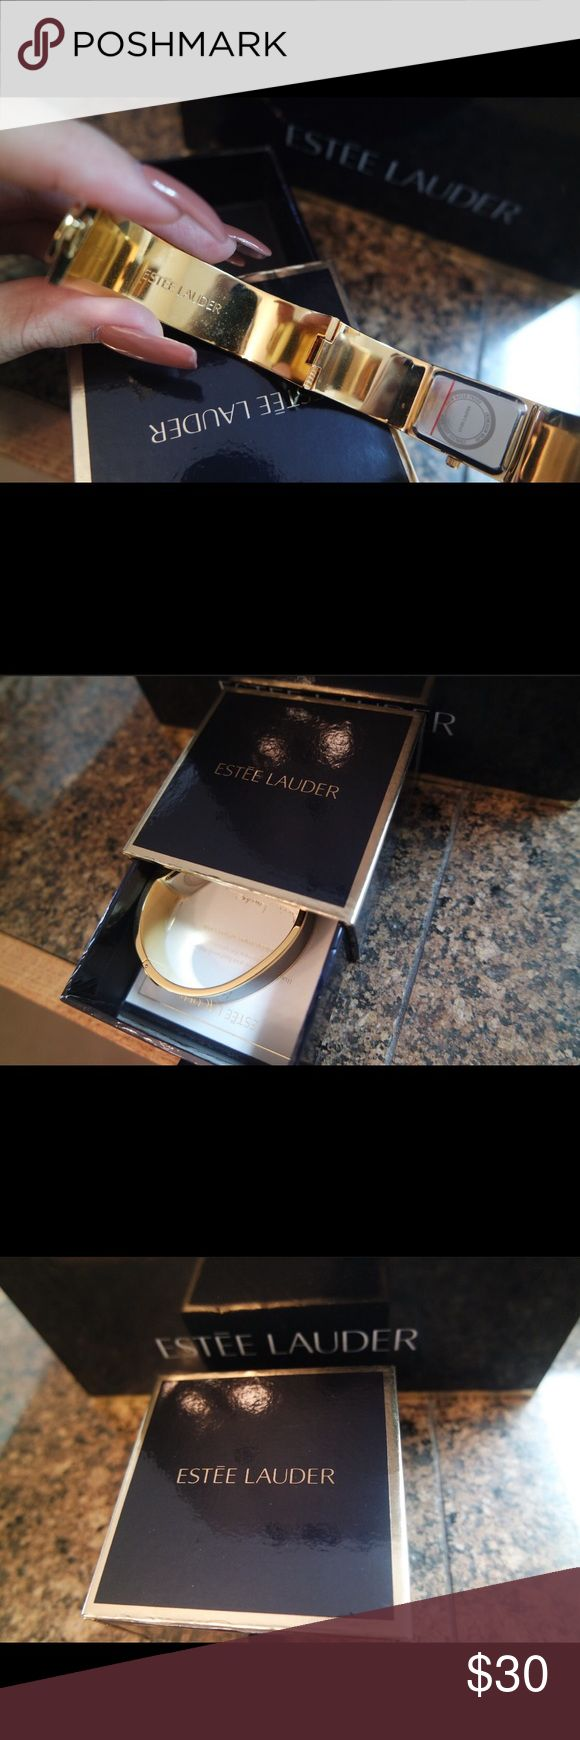 Estée Lauder 💙Collectors Watch BRAND NEW, NEVER USED!  This item is brand new and I received it as a gift while I was working for Lauder in 2014! I'm listing it at $30 but feel free to MAKE ME AN OFFER!  100% Authentic ❗️ PERFECT for the Estée Lauder collector!  When shipped, you will receive the Estée Lauder Collectors Watch with its original packaging you see in the photos!   Please feel free to ask questions! 😊💕 Estee Lauder Jewelry